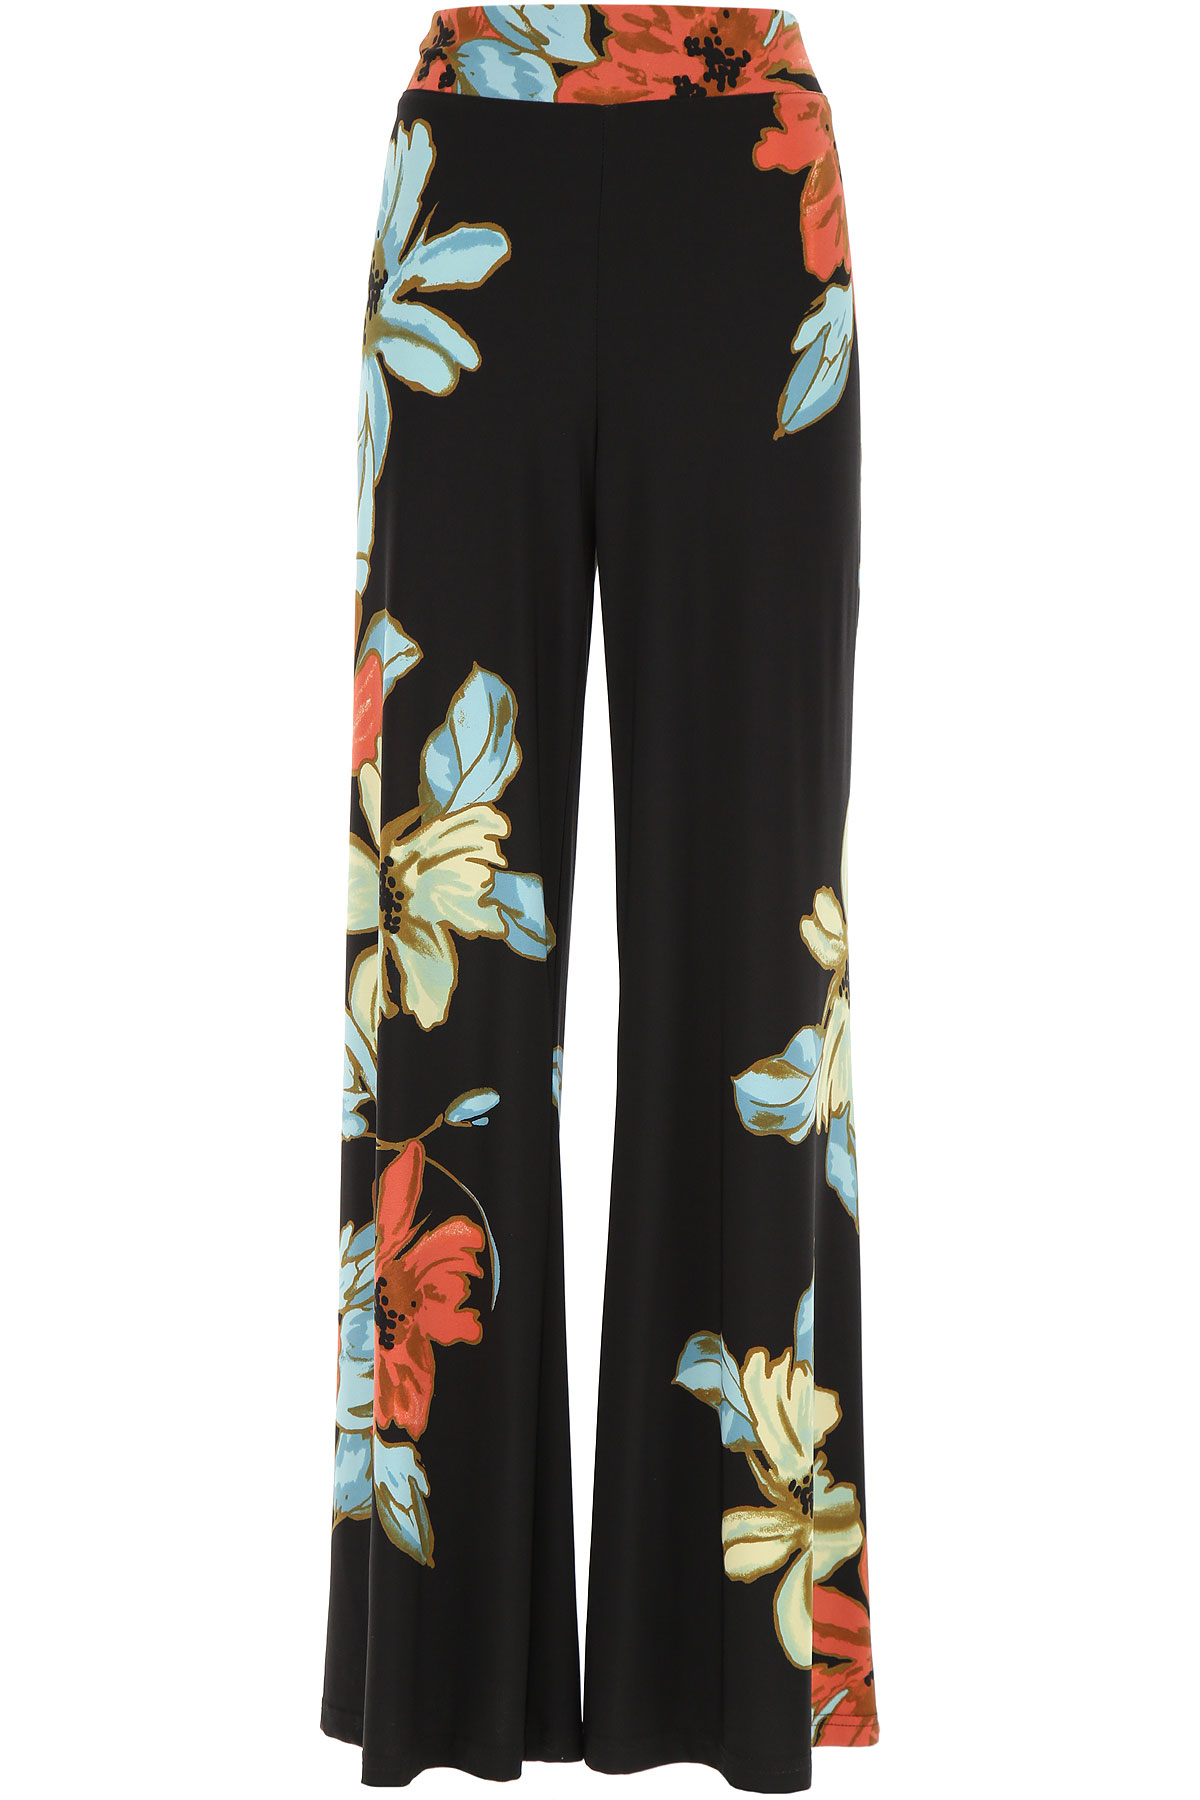 Joseph Ribkoff Pants for Women On Sale in Outlet, Black, polyester, 2019, USA 16 - EU 50 USA 14 -- IT 48